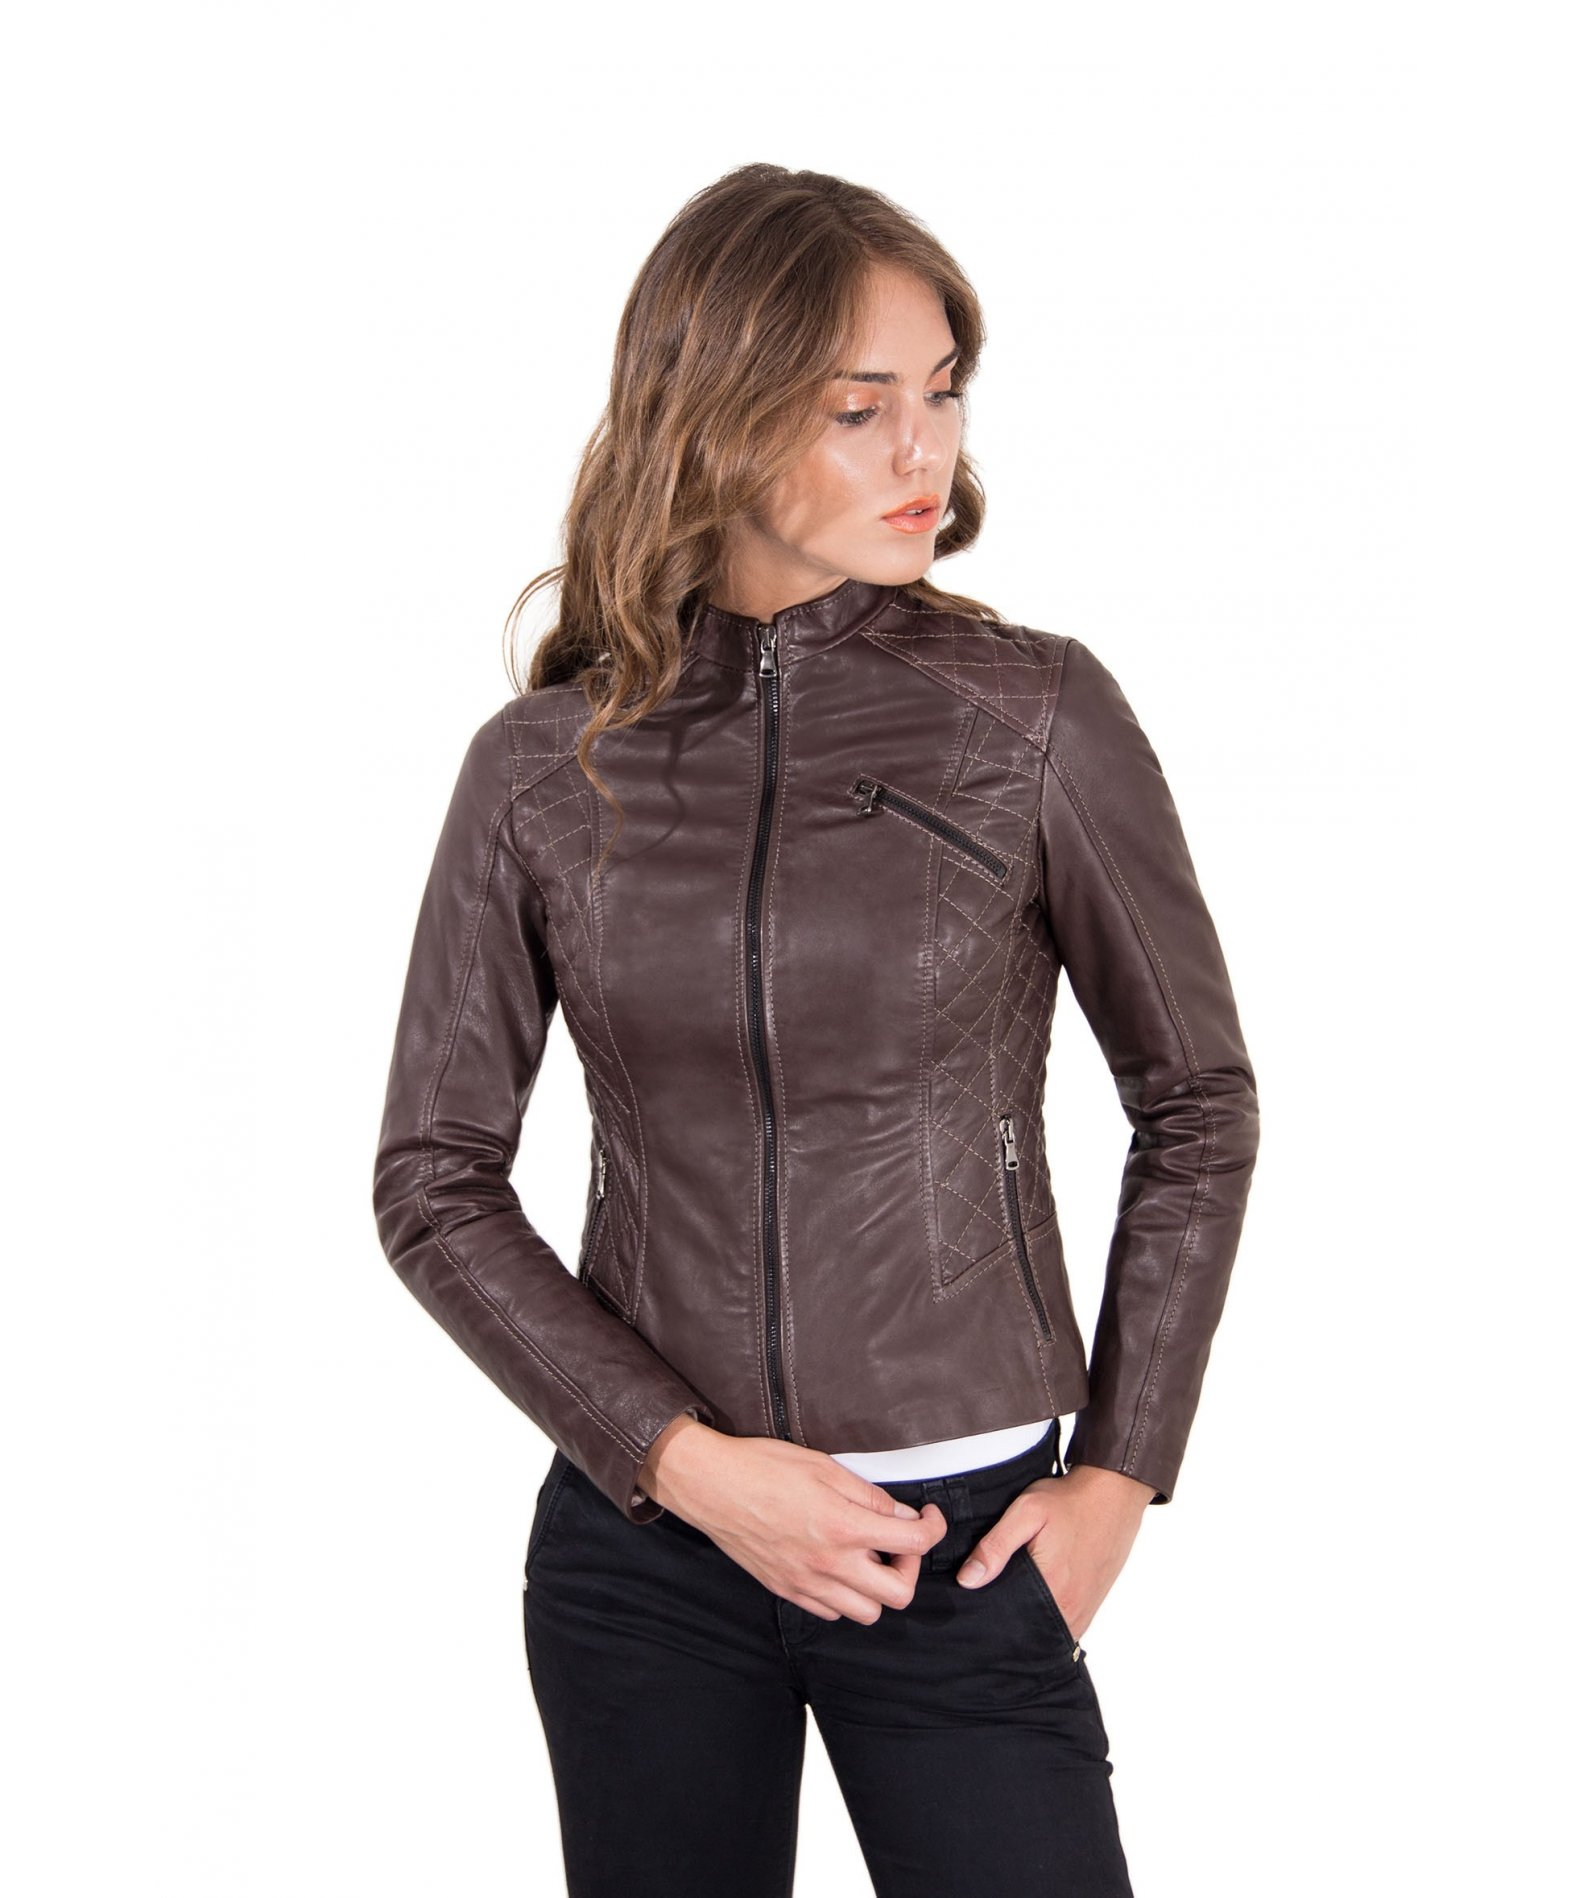 new products 4bb28 61165 Chiodo Biker in pelle testa di moro donna bogotà effetto vintage